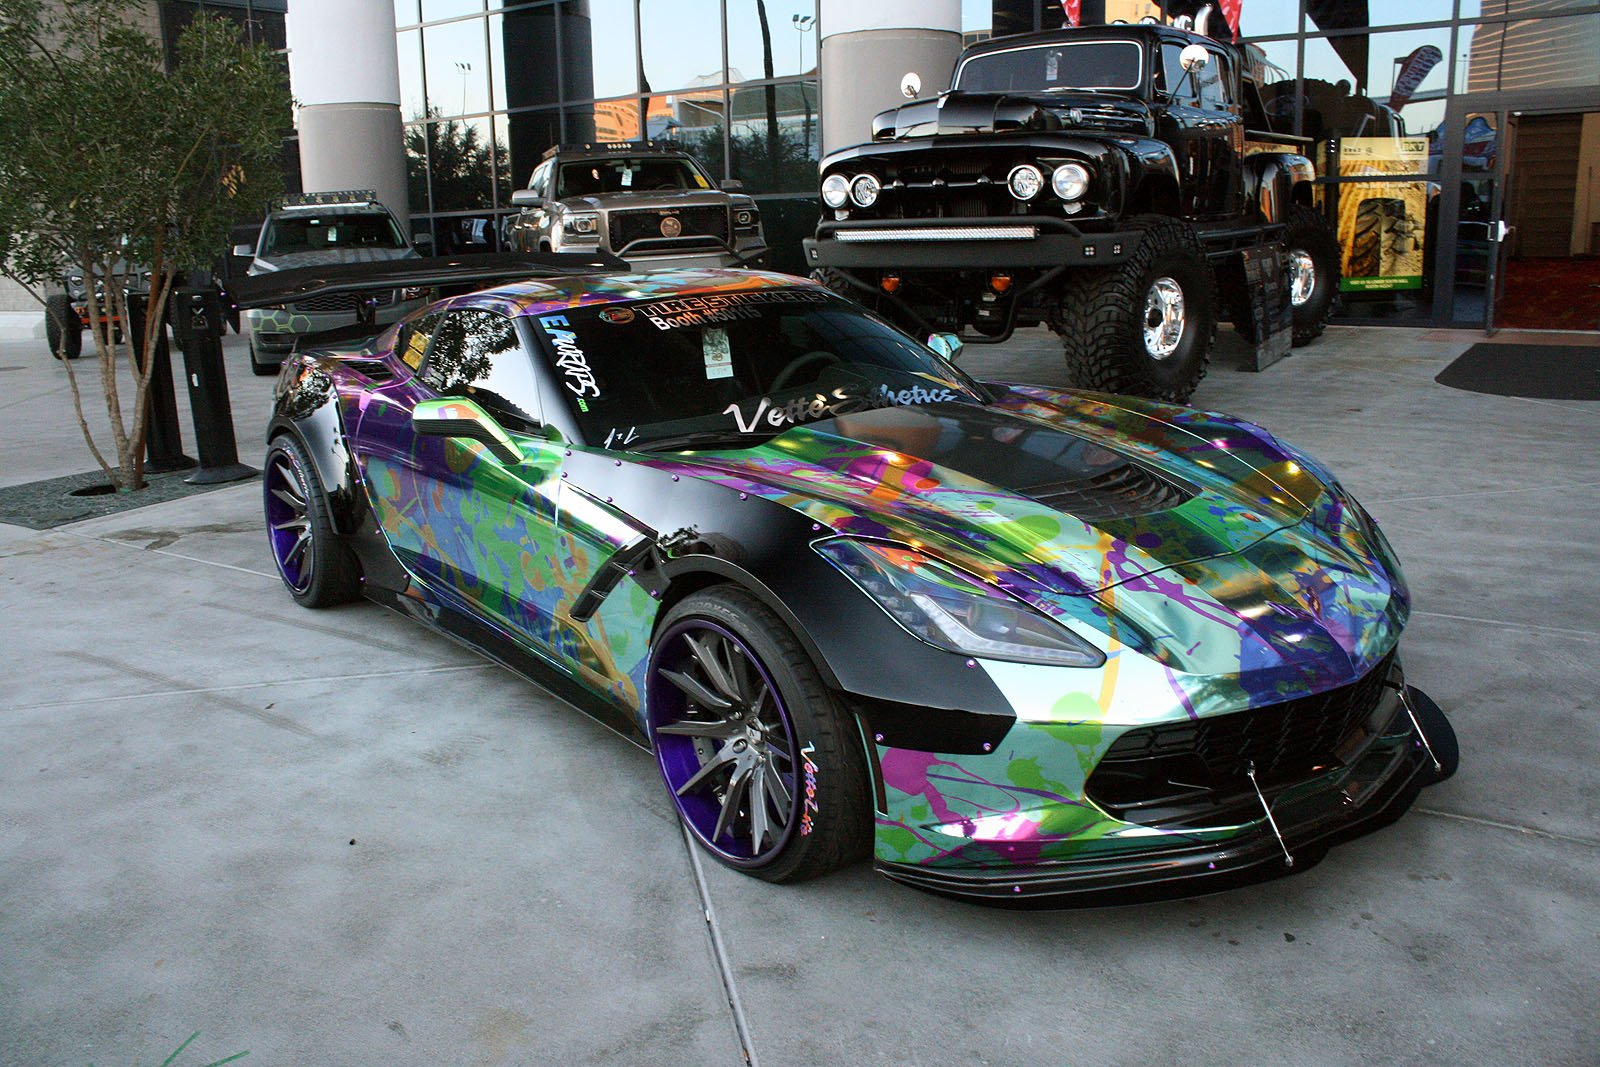 Gallery: Most Interesting Paint Jobs And Exterior Finishes